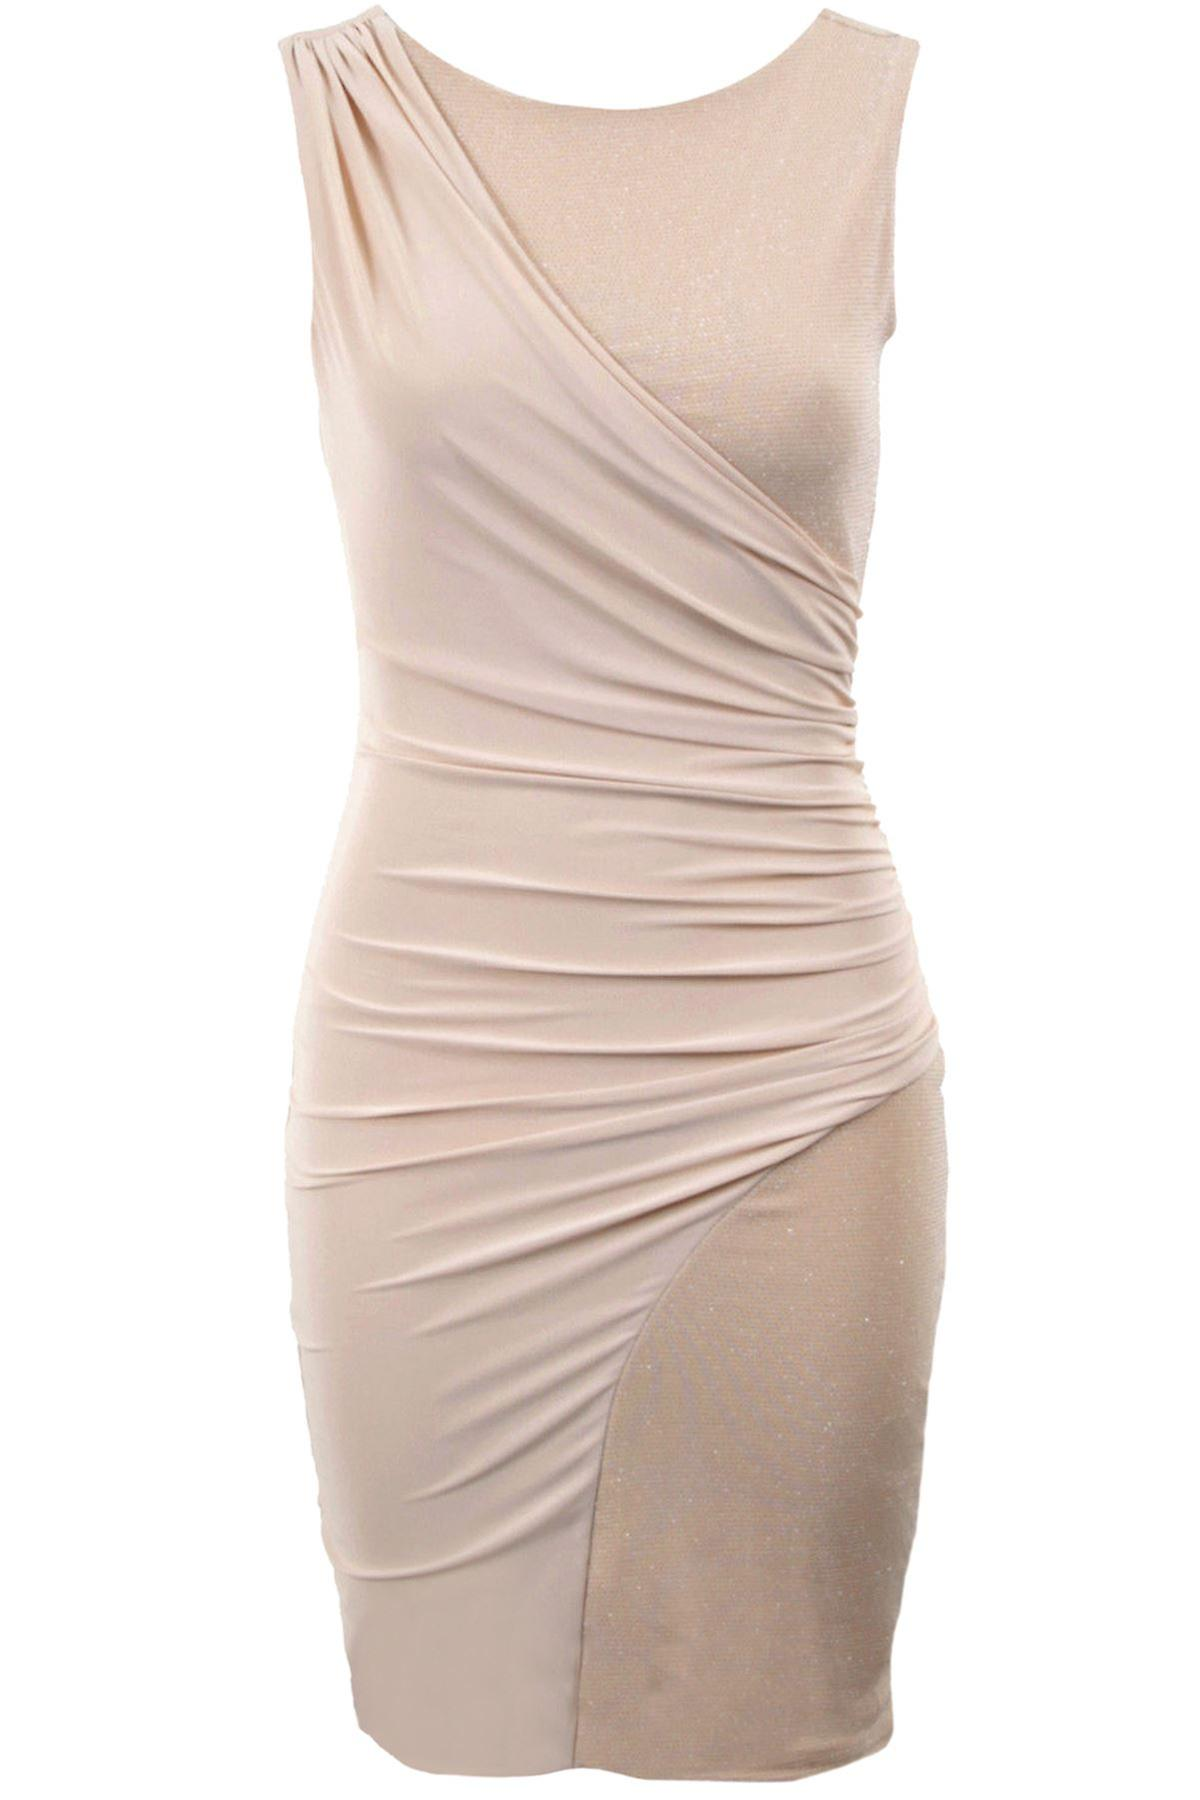 Ladies Silver Glitter Diagonal Wrap Bodycon Womens Short Party Evening Dress